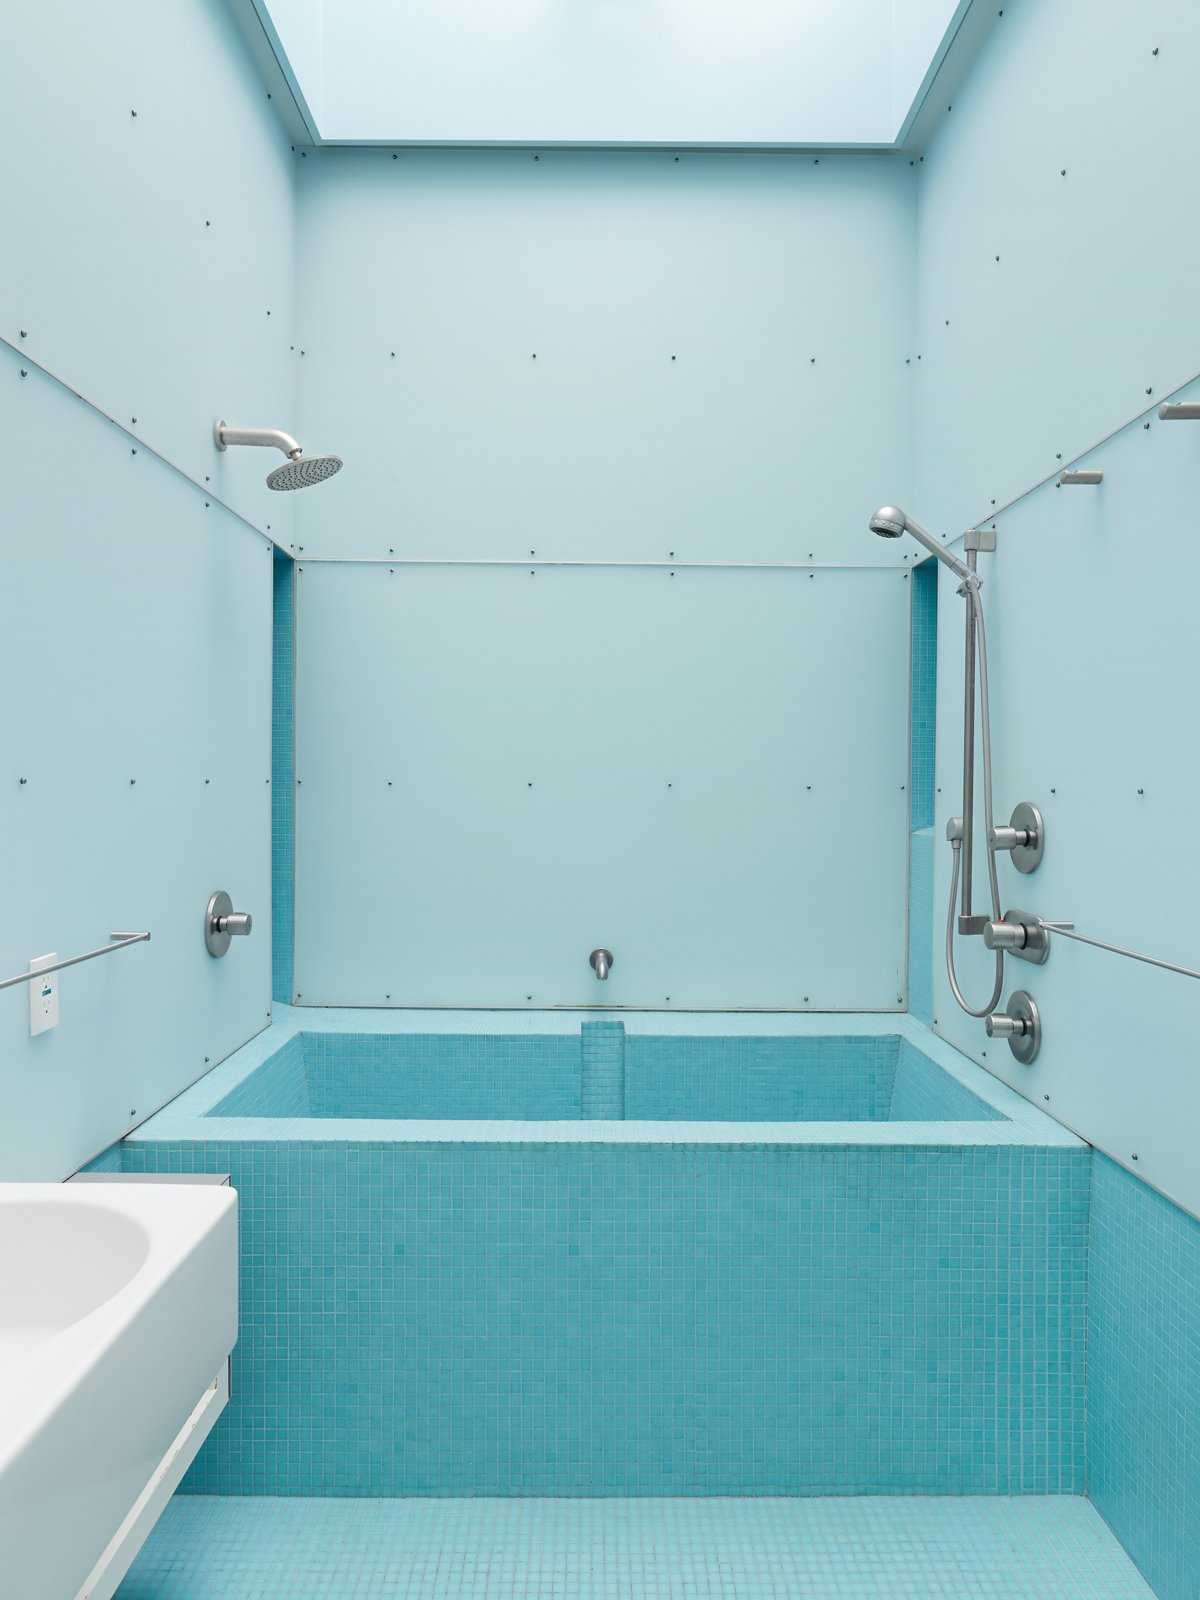 Dunbar describes the bathroom as an outside-in room because it has light, air, and sometimes, when it drizzles and the skylight left open, even rain. Designed for exactly these circumstances, a blue-glass mosaic tile floor is laid at an angle to drain with ease.